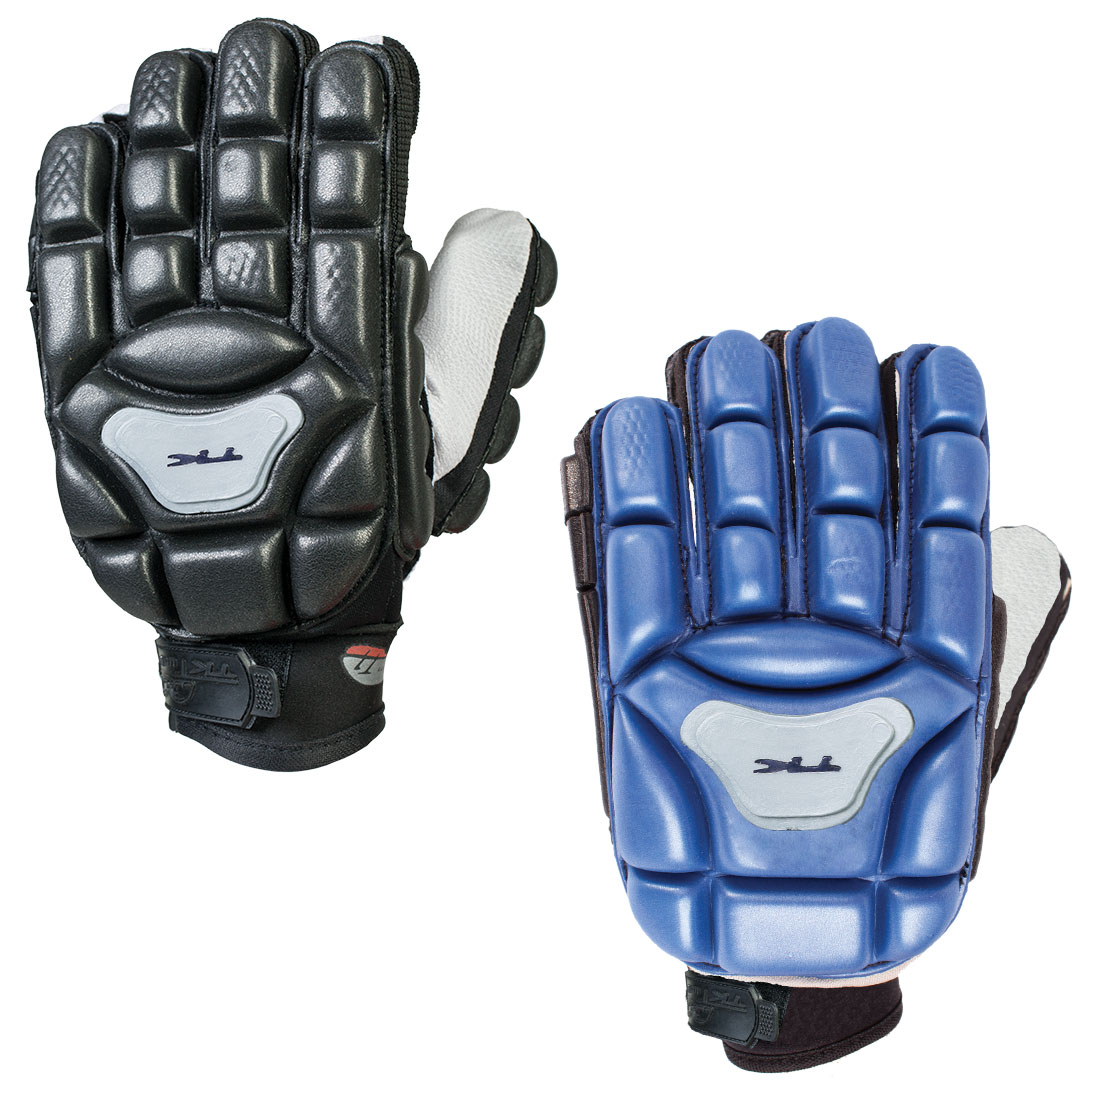 Gloves - Gloves are not required, but players may find these helps save them from some painful bruises.Indoor players typically wear thicker gloves, like those seen in the picture. A left hand glove is always recommended for indoor field hockey.You can shop online or in stores for many other types of field hockey gloves.